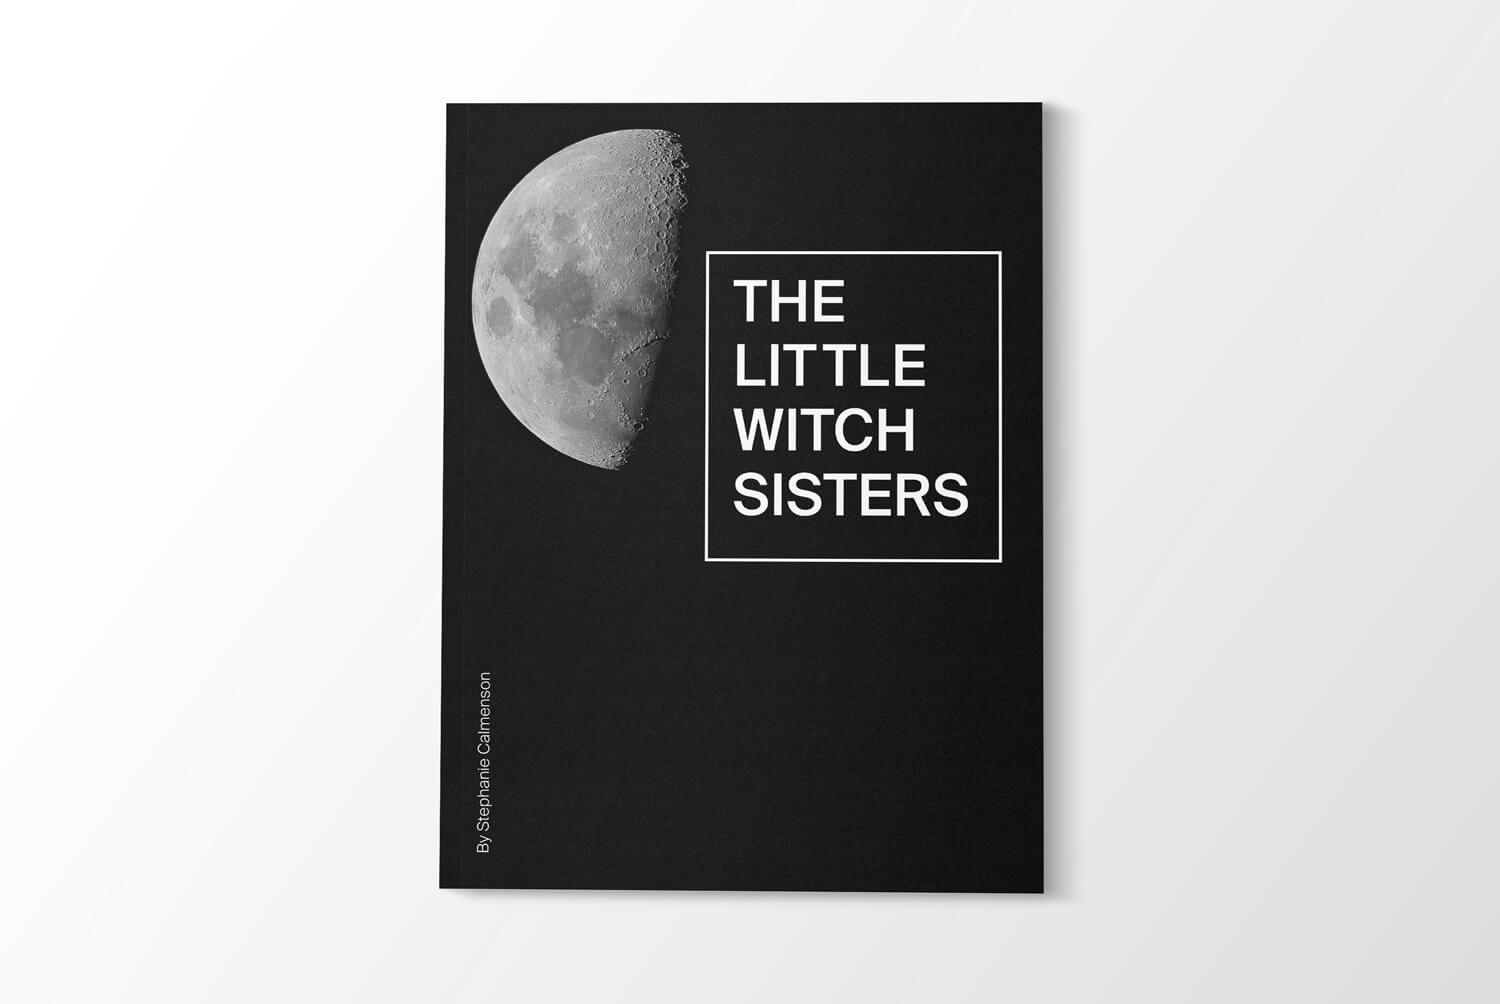 The Little Witch Sisters